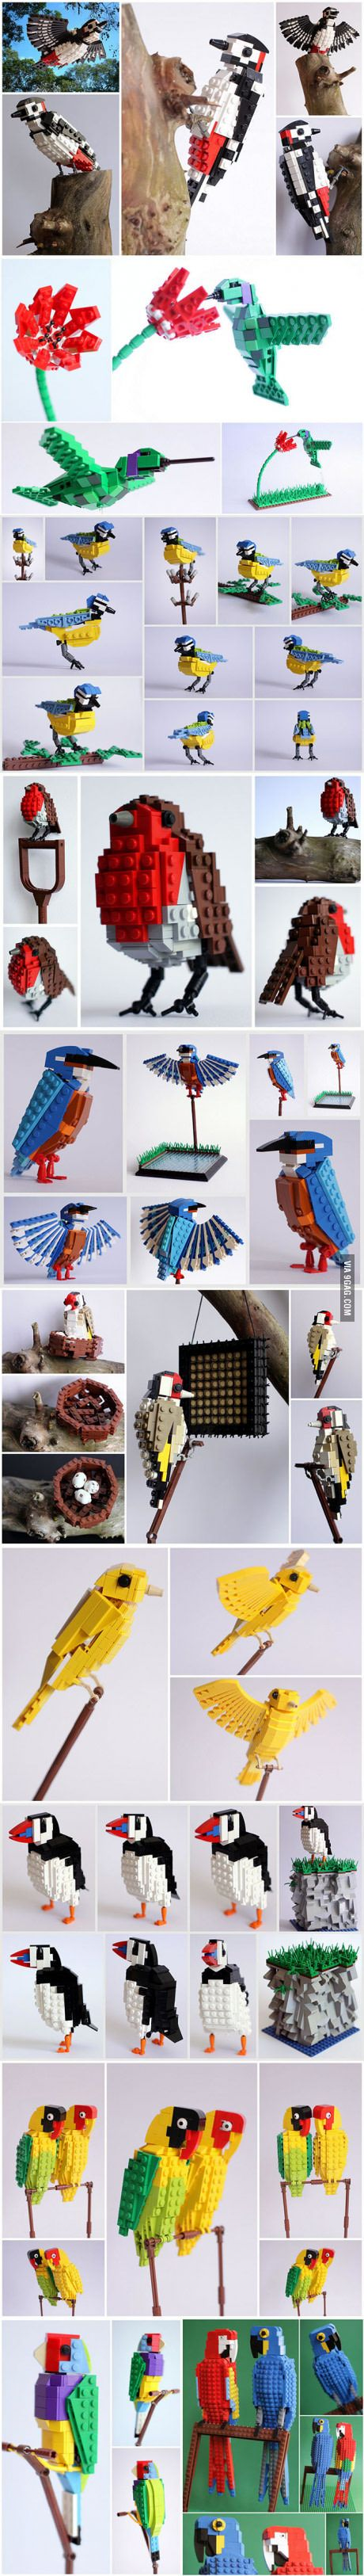 Awesome LEGO Birds